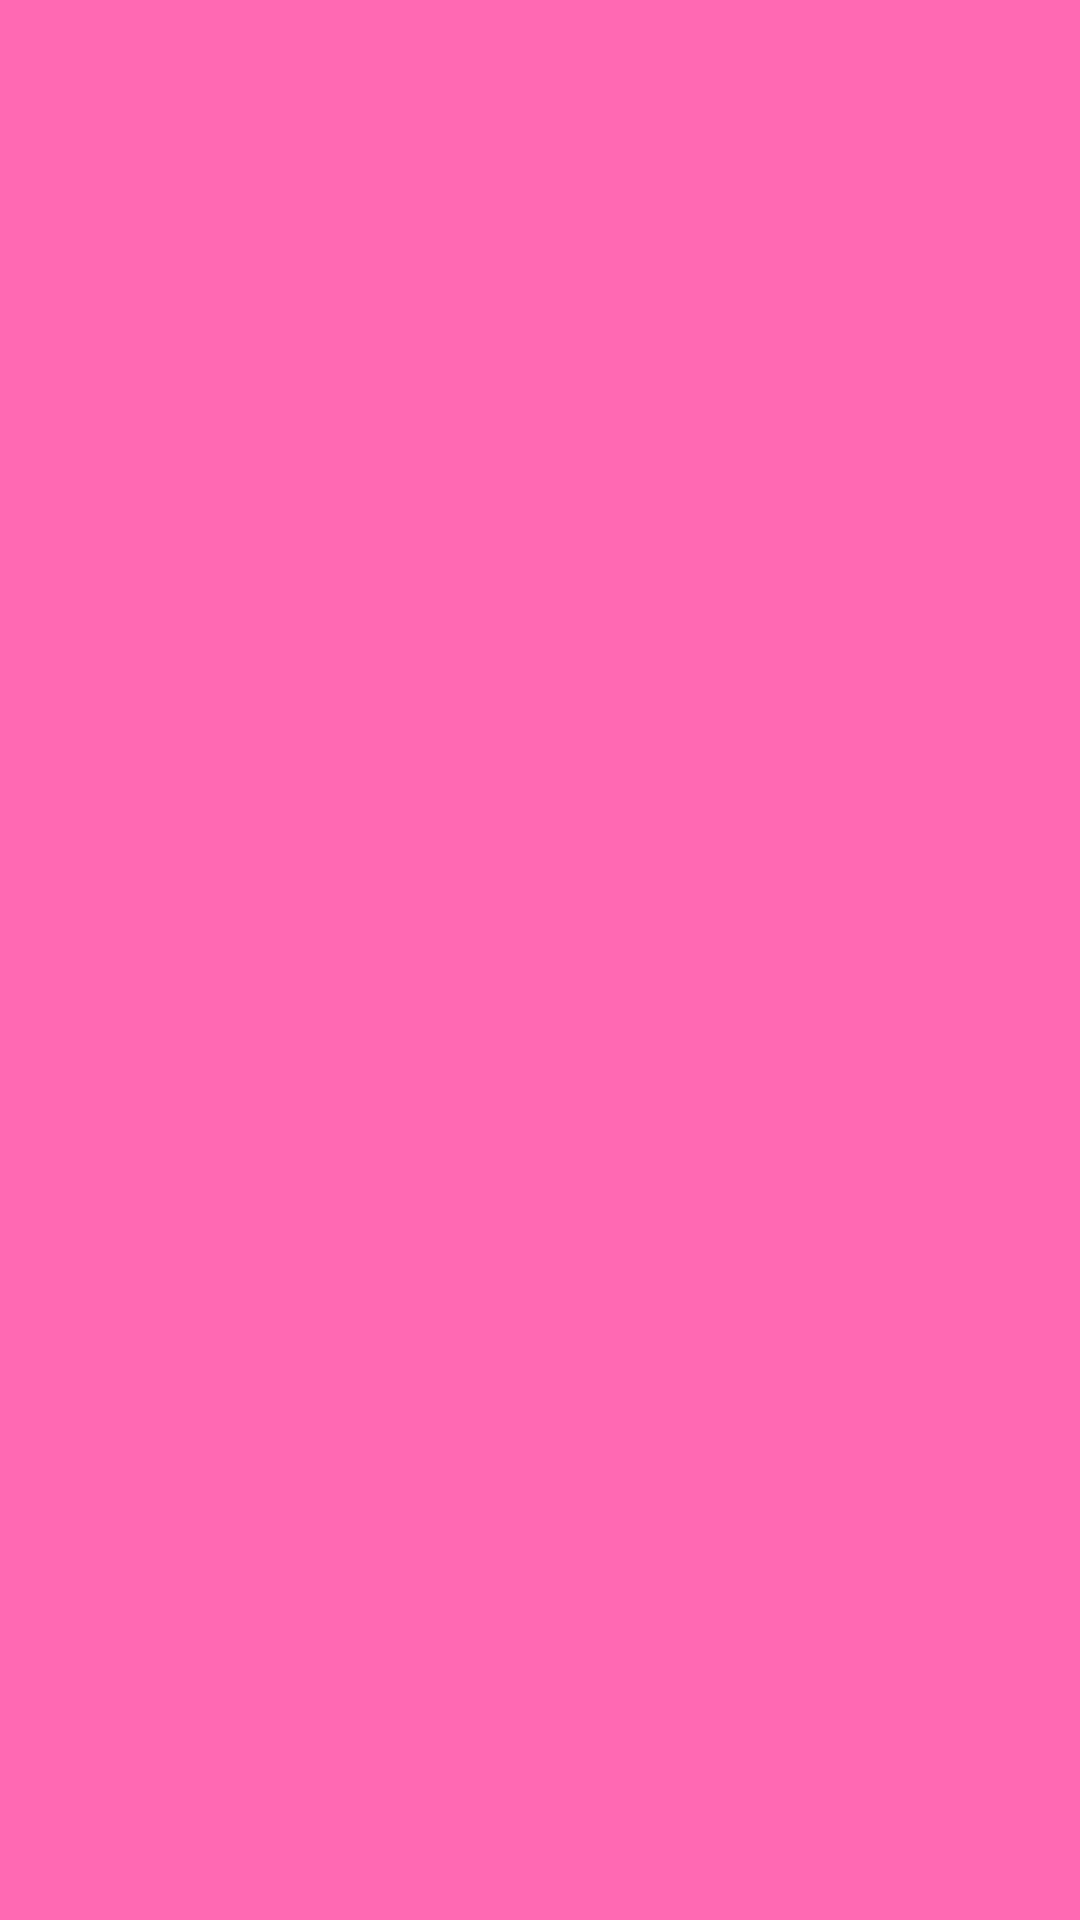 Solid Pink Color Wallpapers   Top Free Solid Pink Color ...